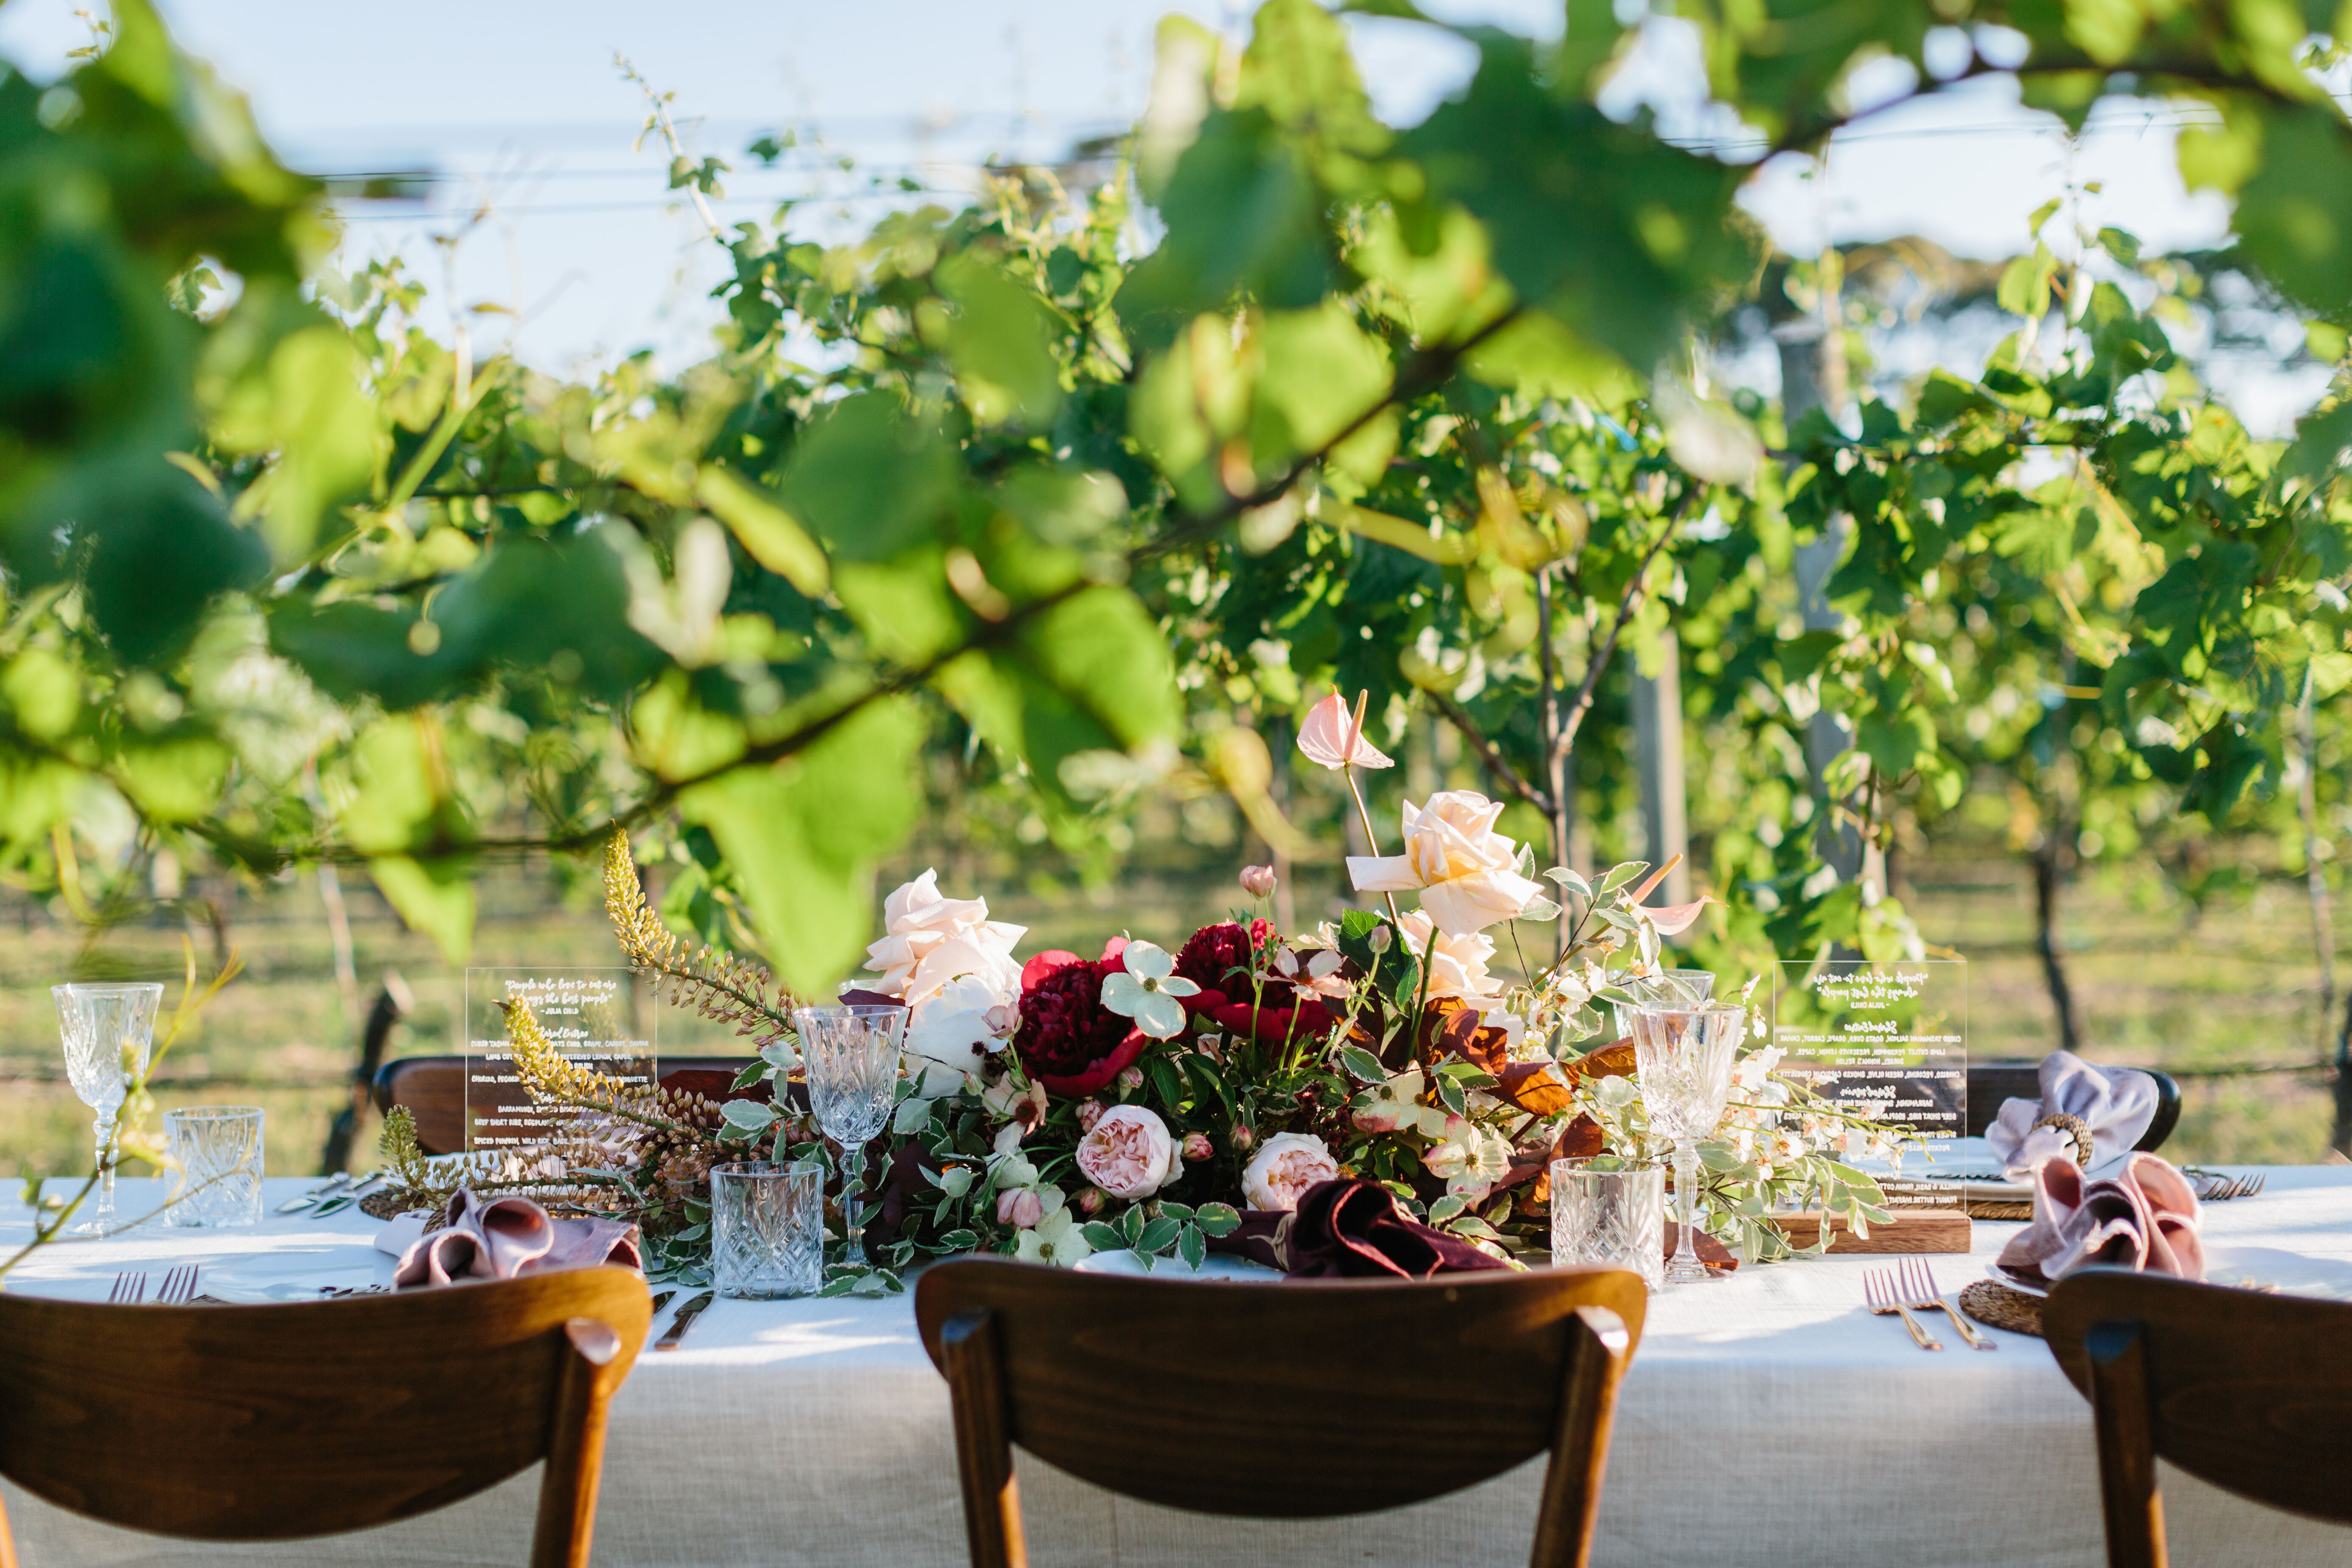 Outdoor styling play with colour